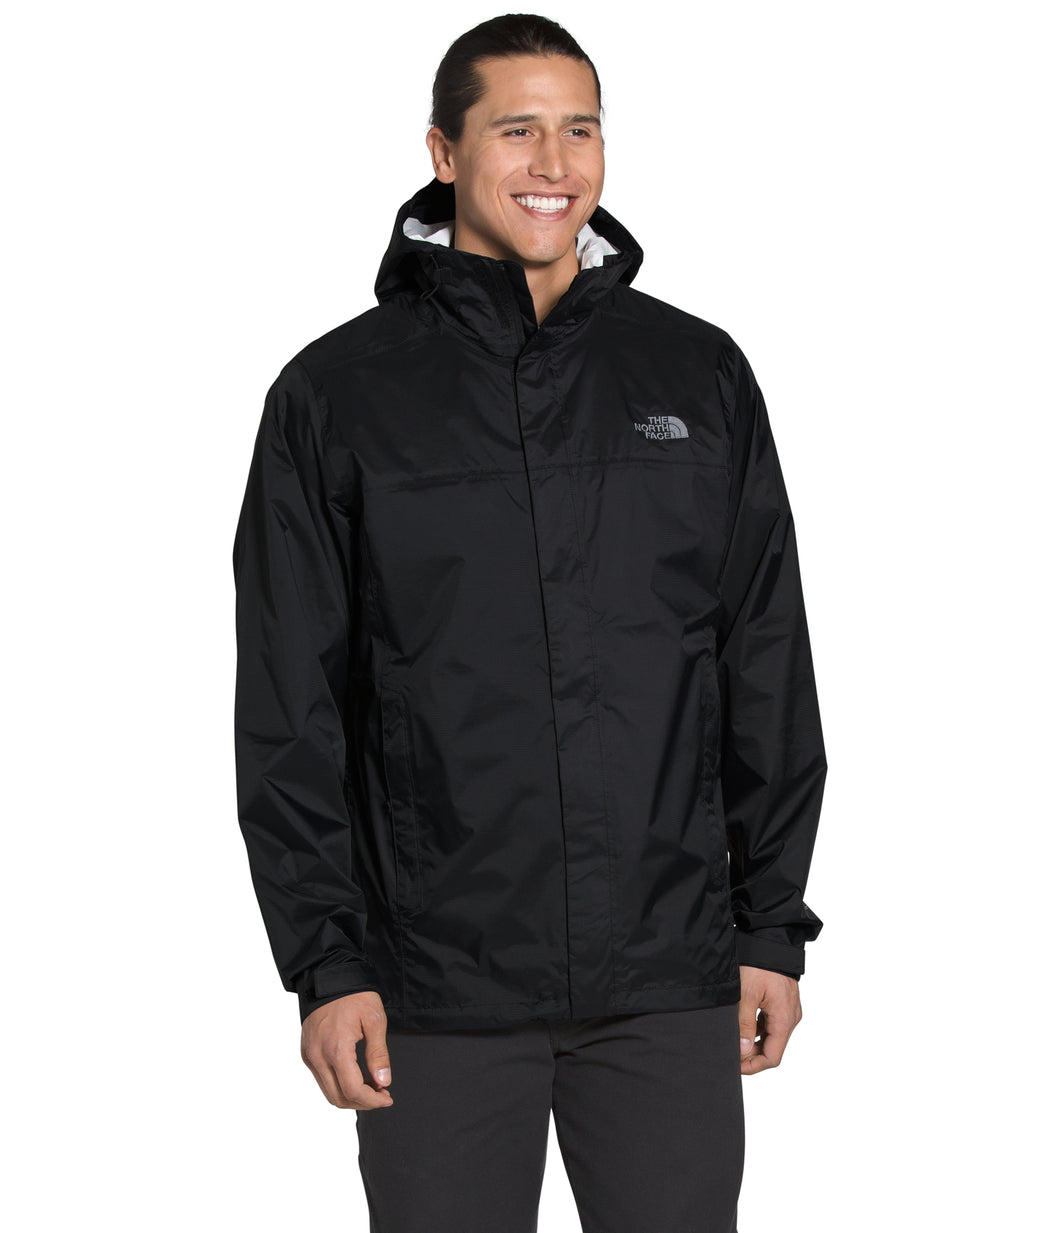 Men's The North Face Venture 2 Jacket - Tall in TNF Black/TNF Black/Mid Grey